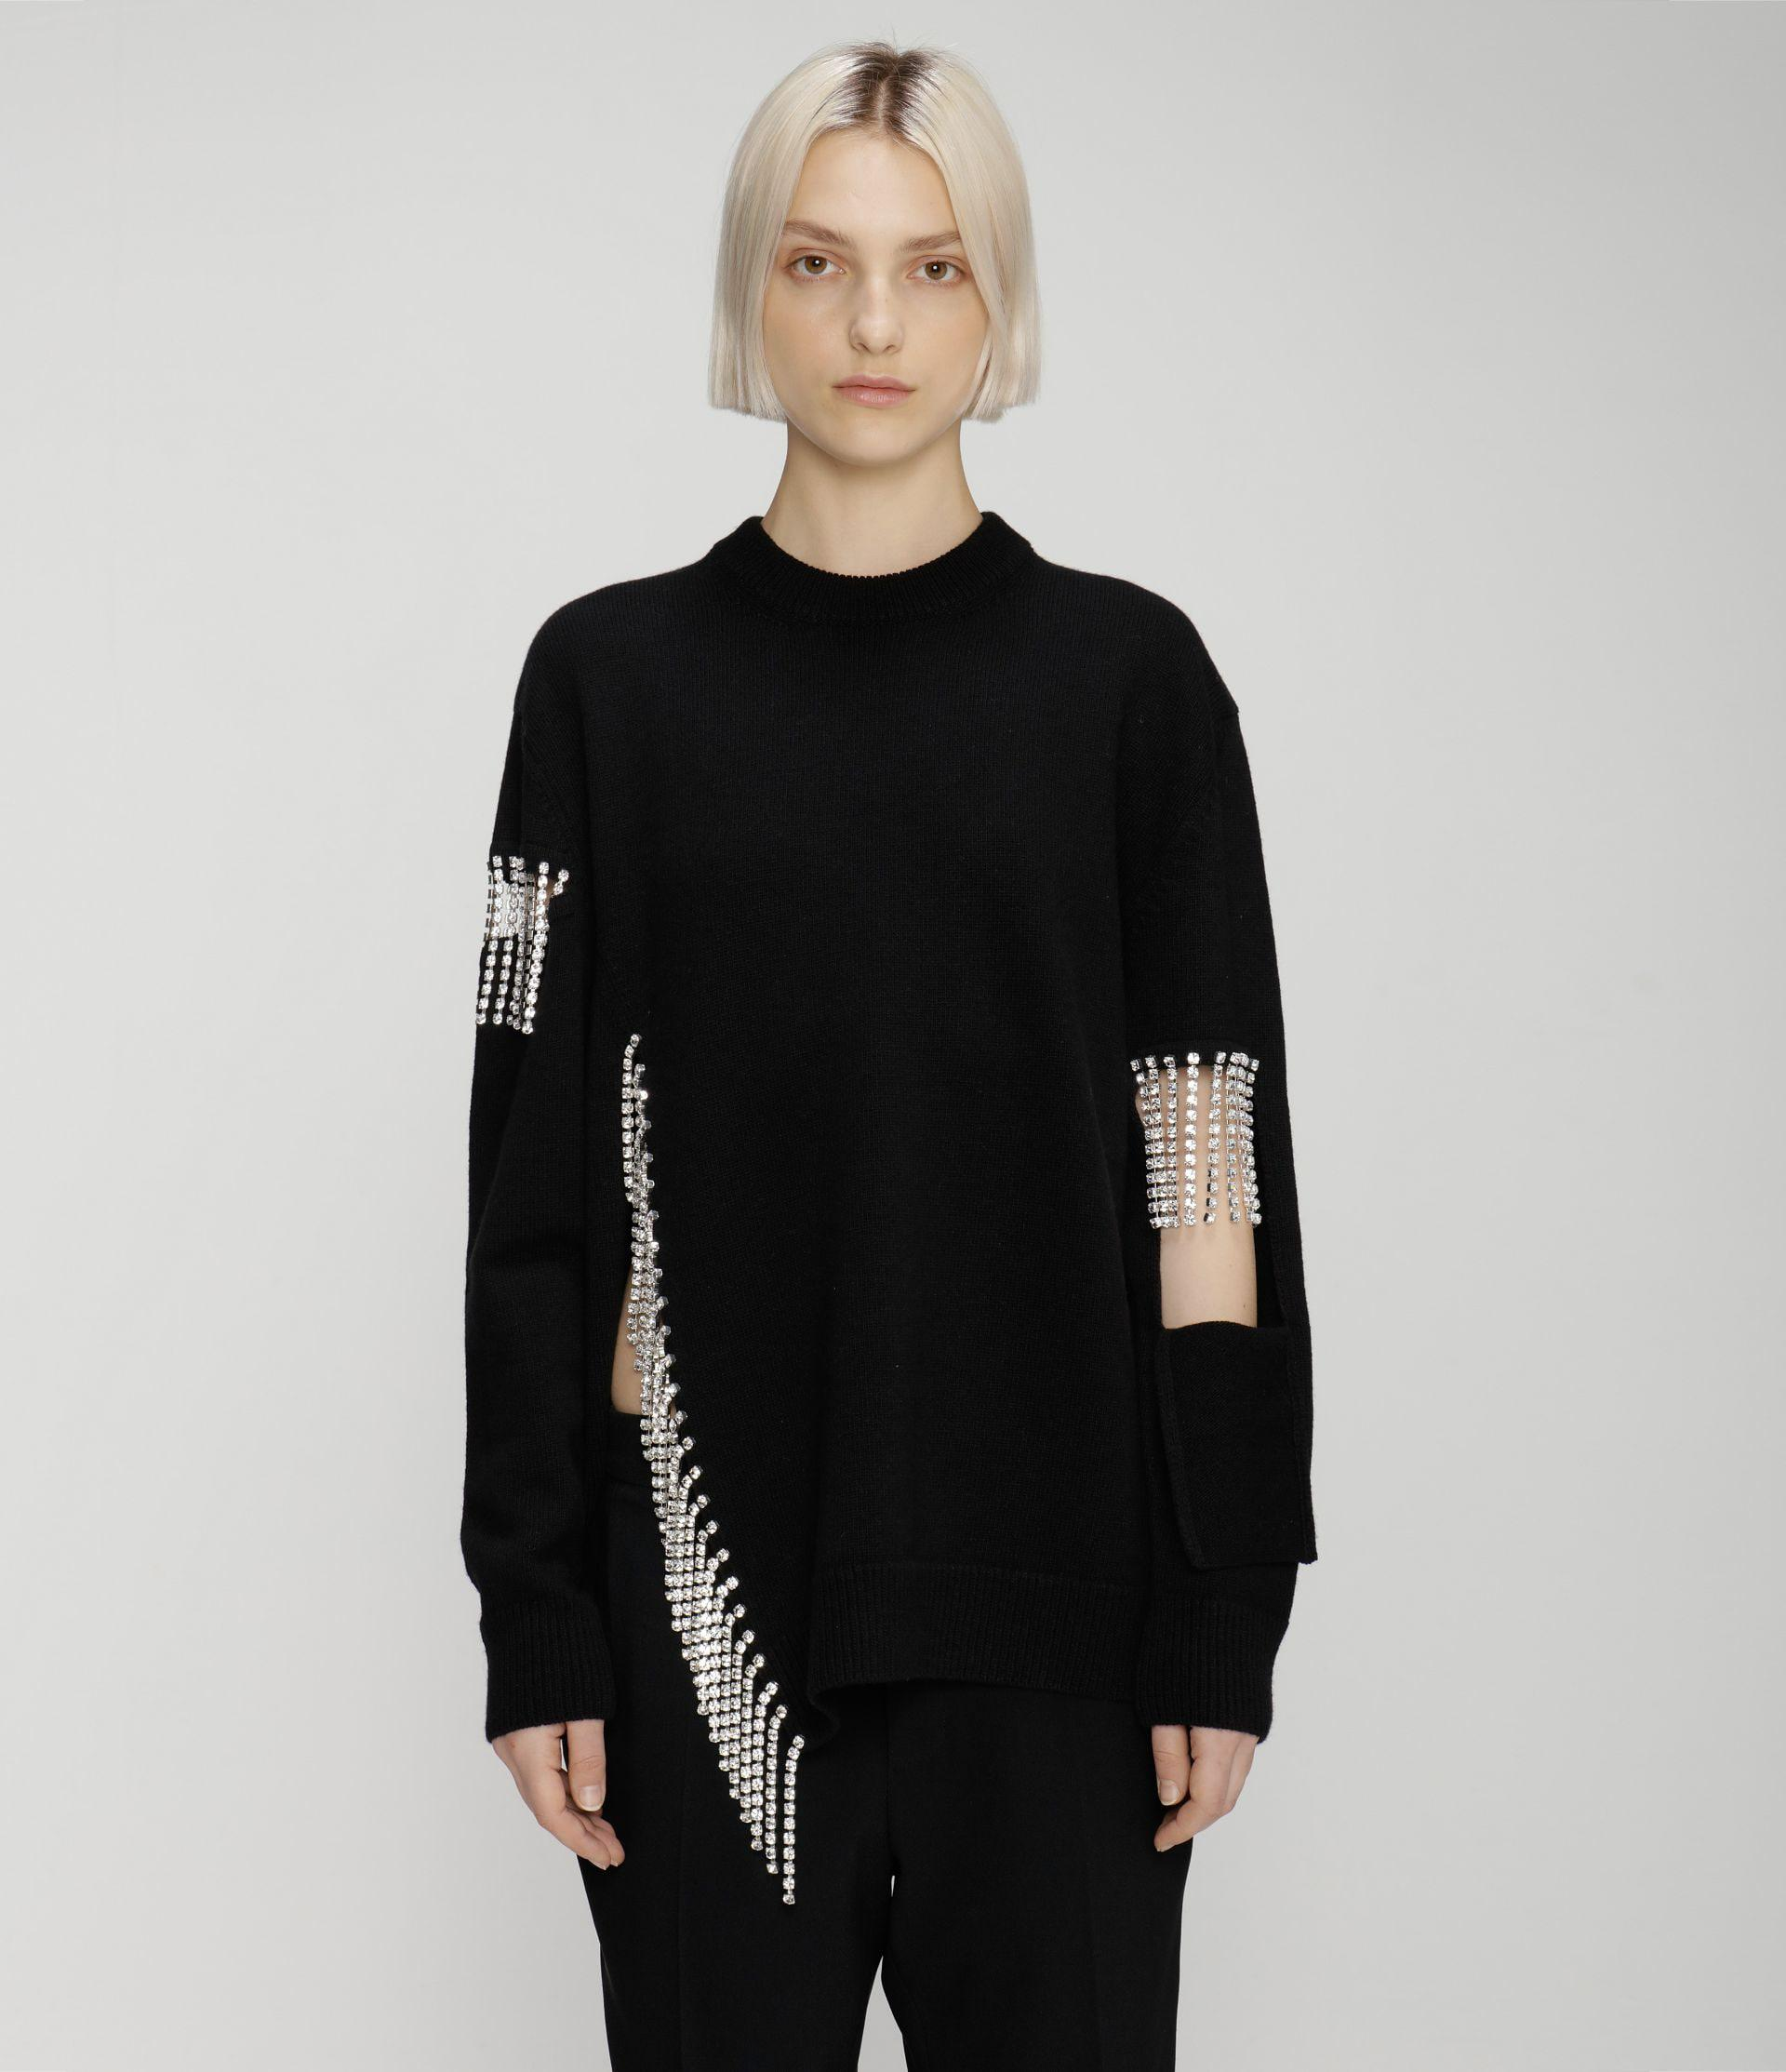 cutout cupchain knitted sweater